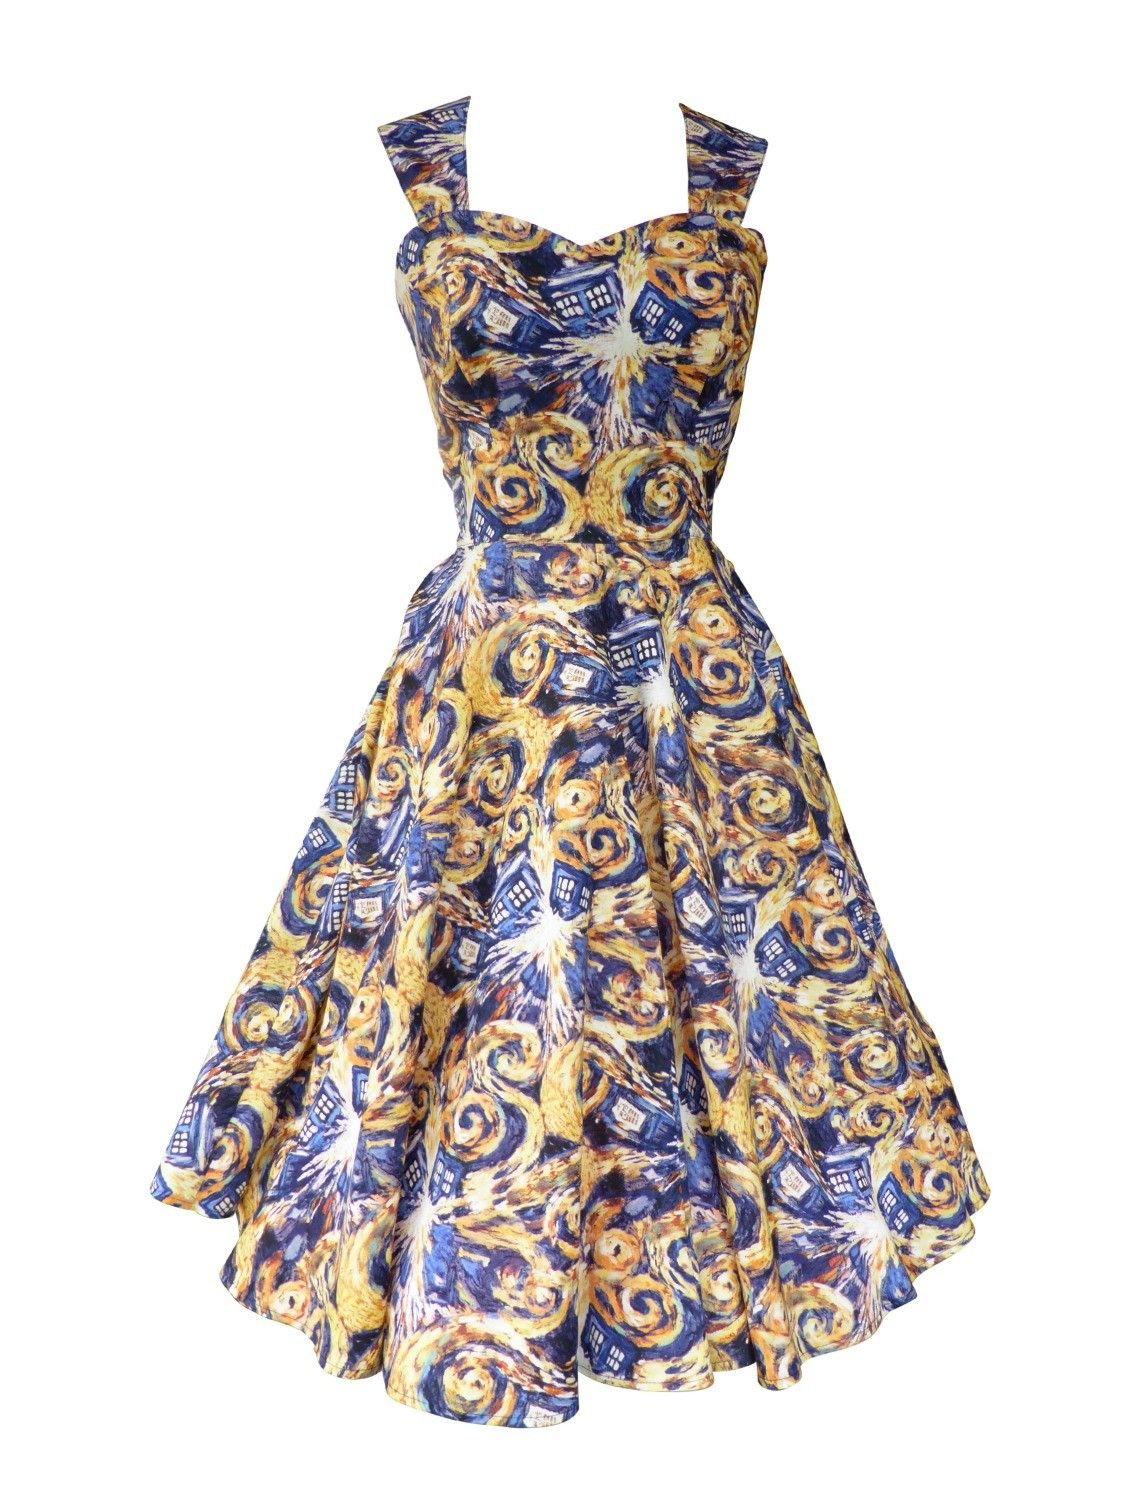 Dr Who Tardis | vintage style dresses | swing dresses | Geek chic ...